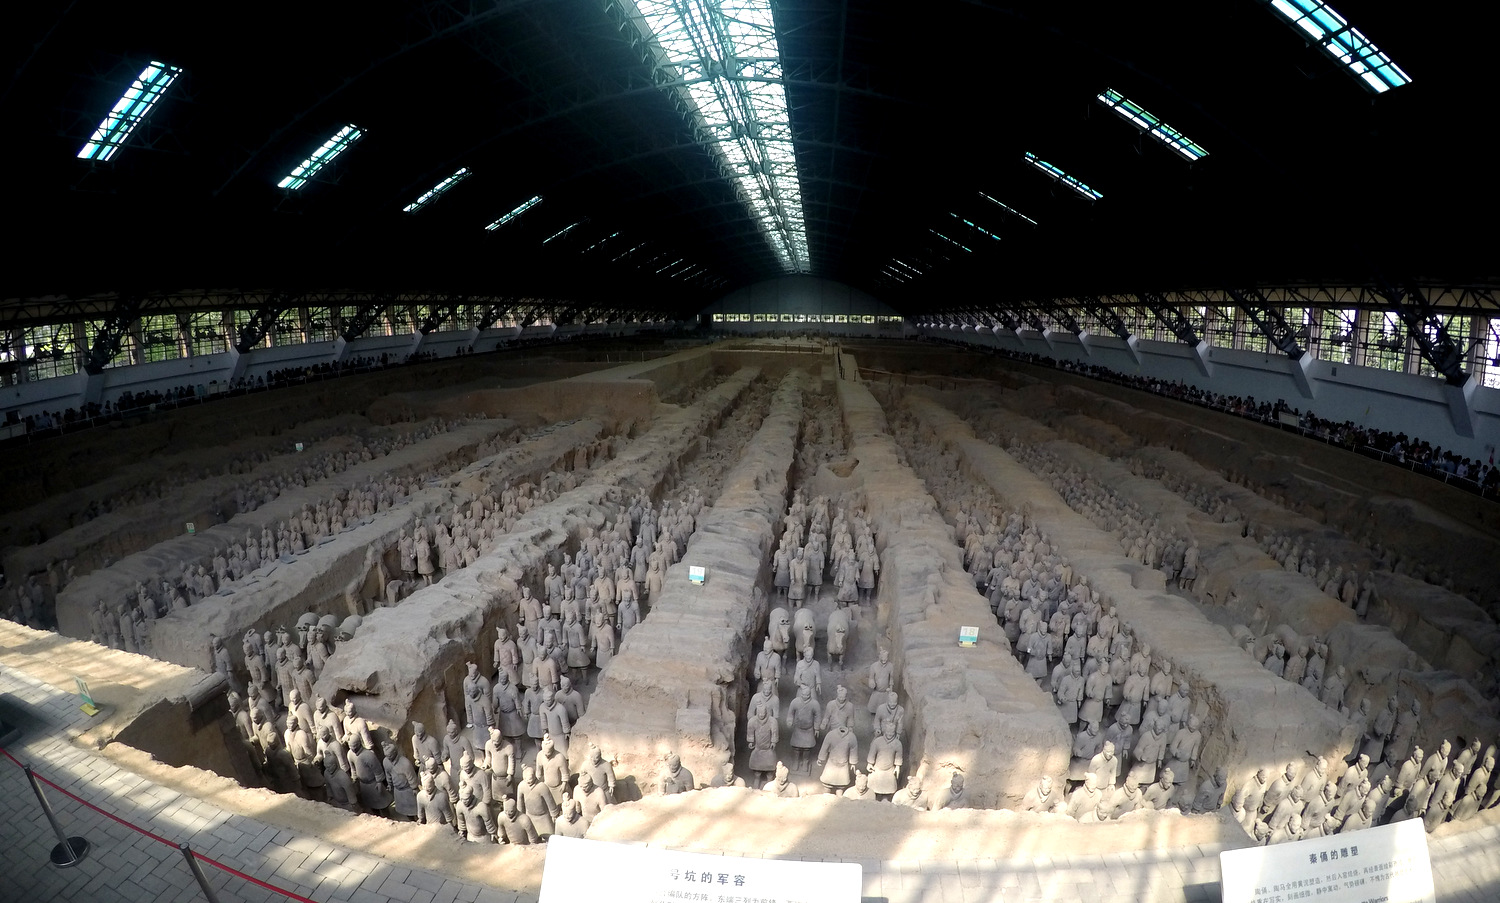 Qin Whi Huang Warriors